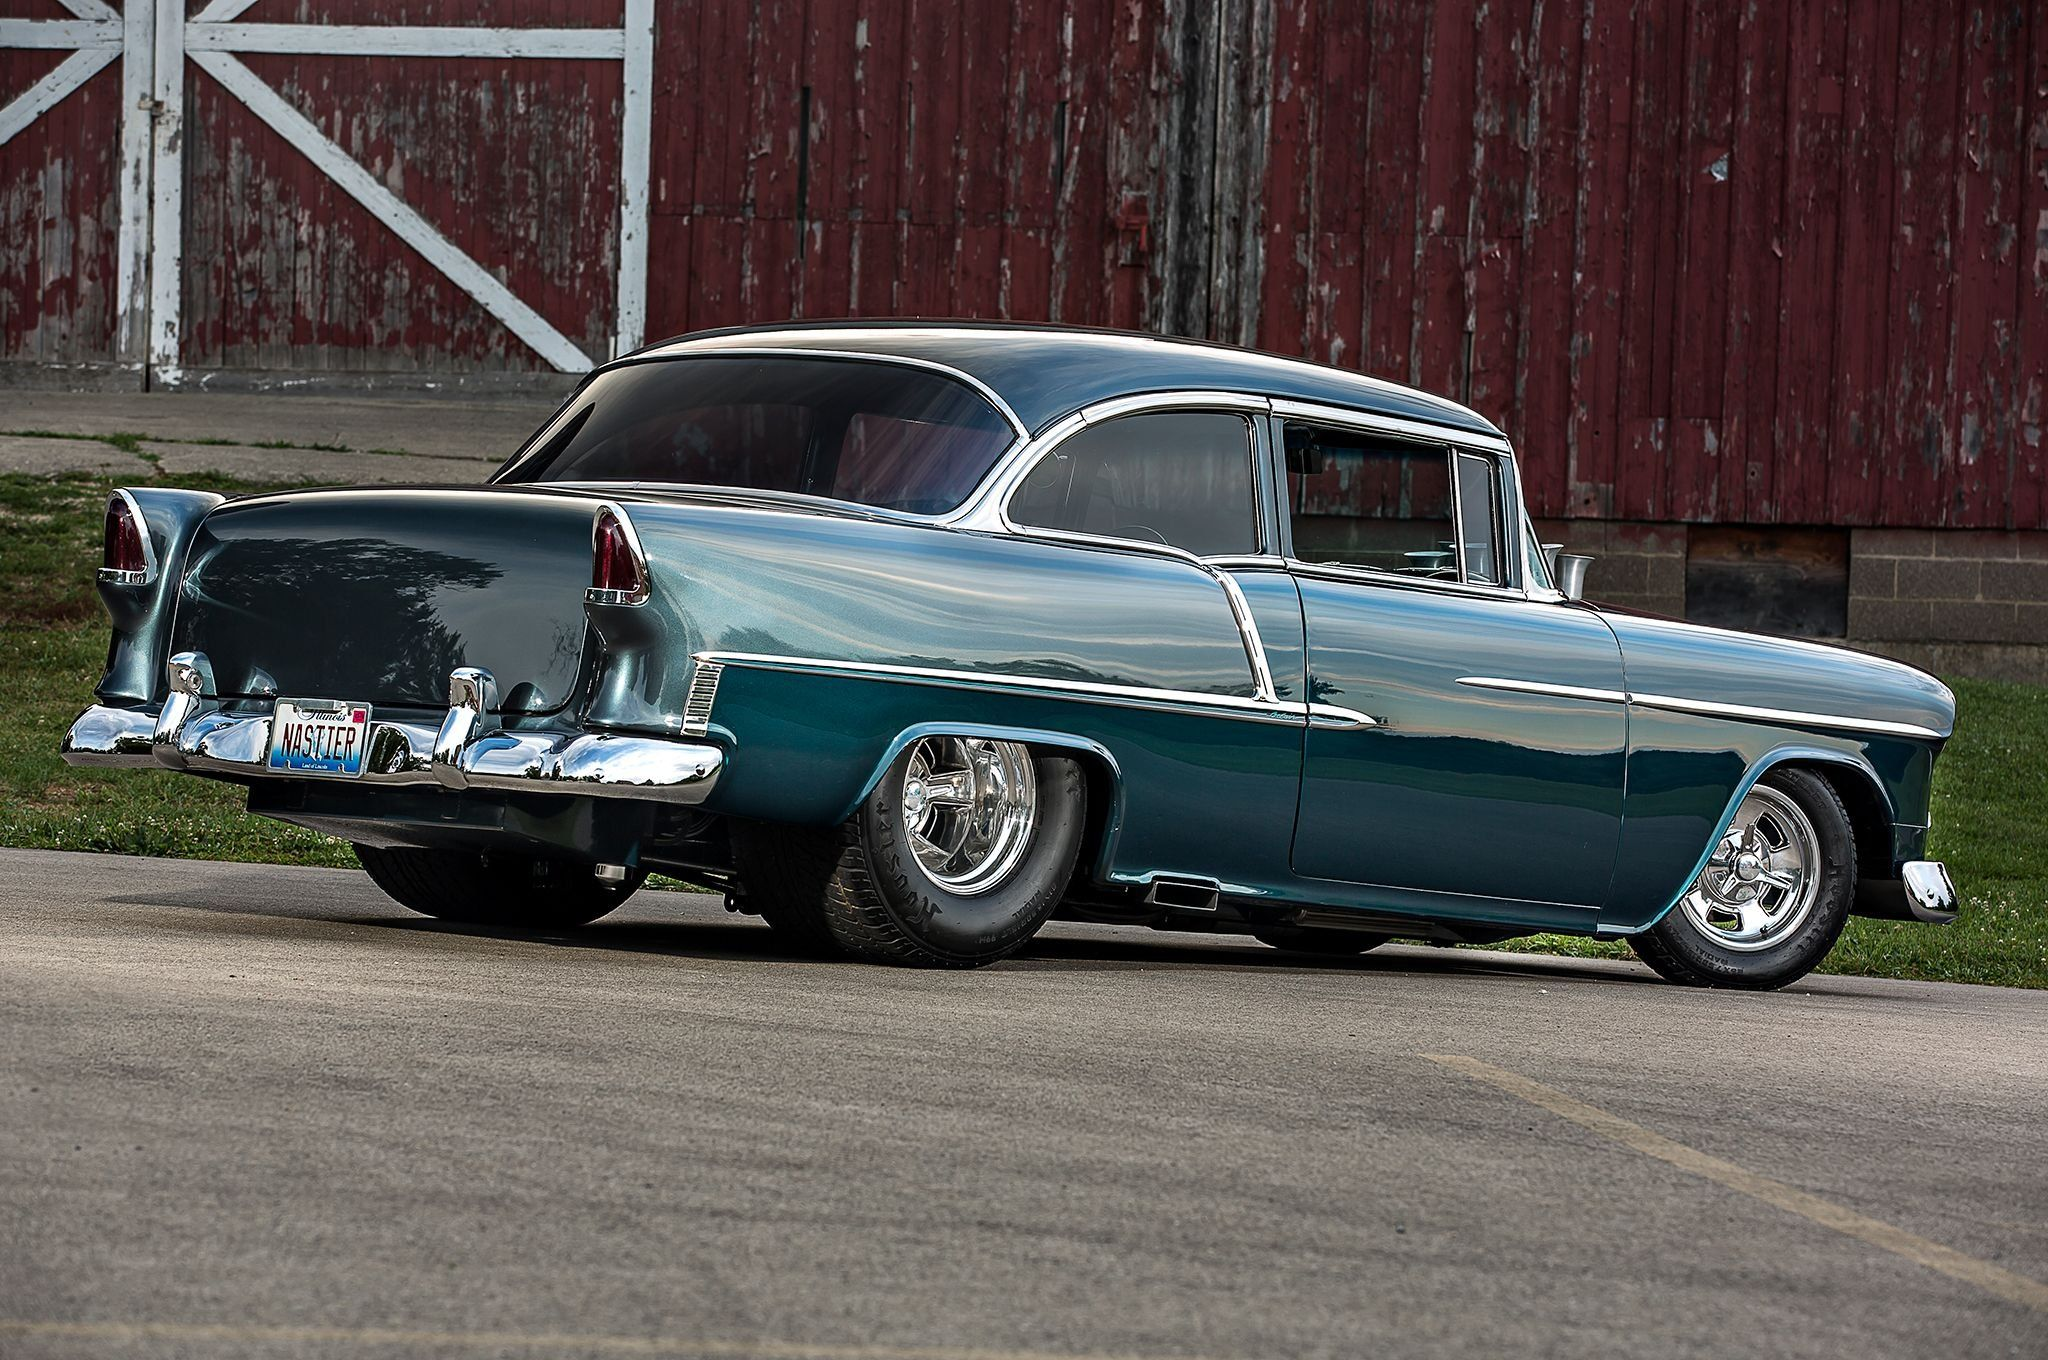 40 Best Free 55 Chevy Muscle Car Wallpapers Wallpaperaccess 1957 Bel Air Drag 1920x1200 Pictures Group 80